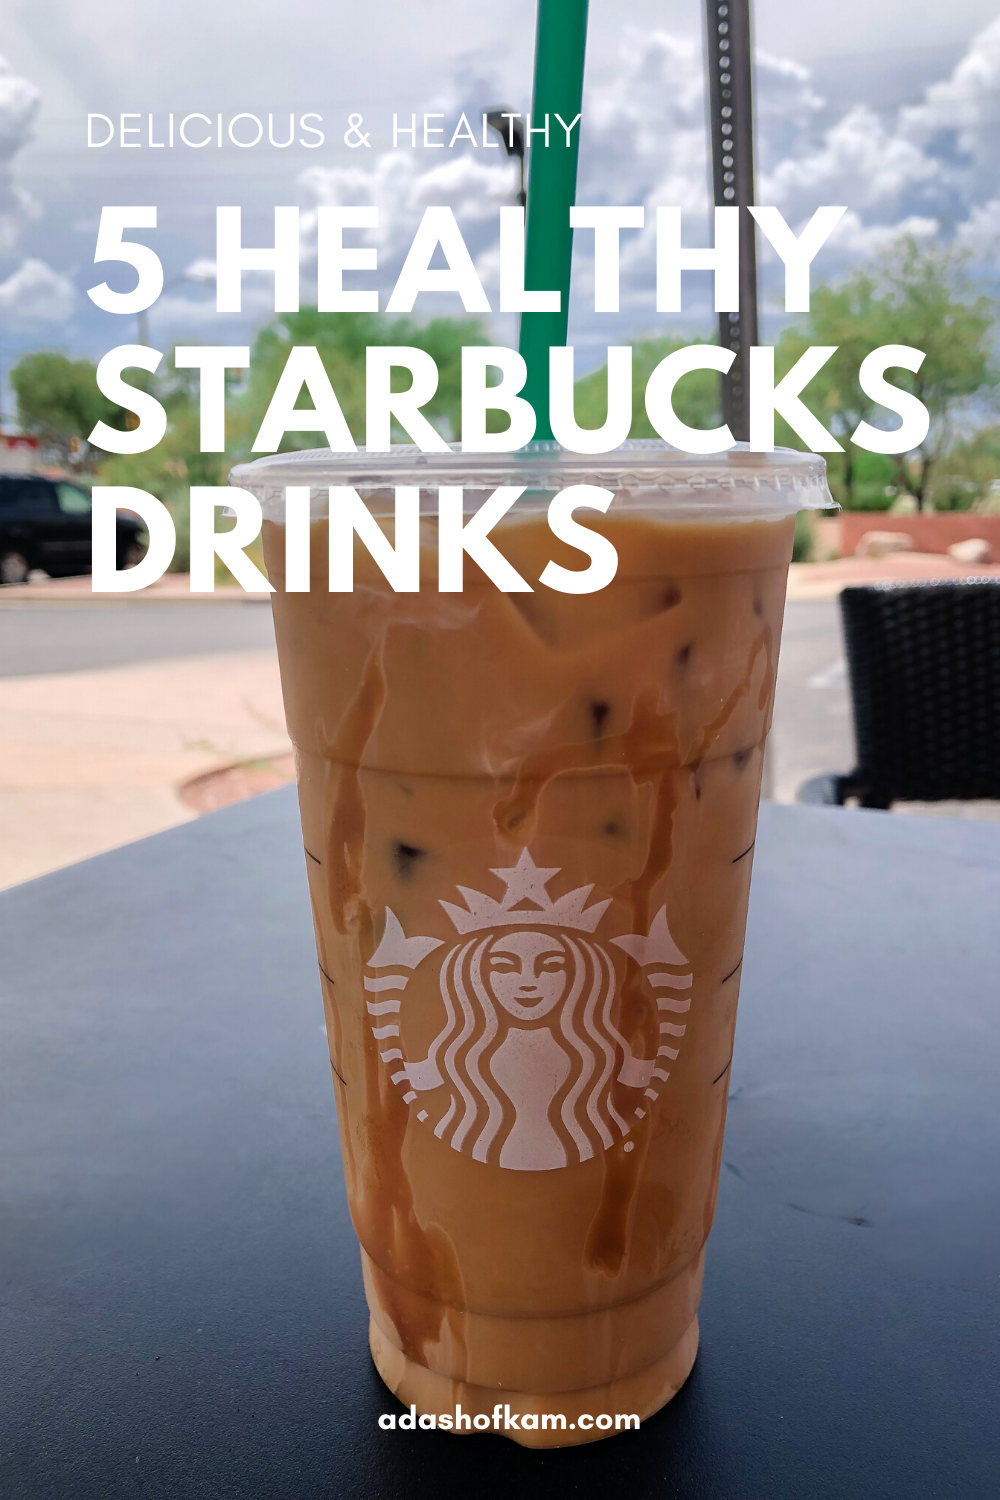 5 Healthy Starbucks Drinks That Actually Taste Good